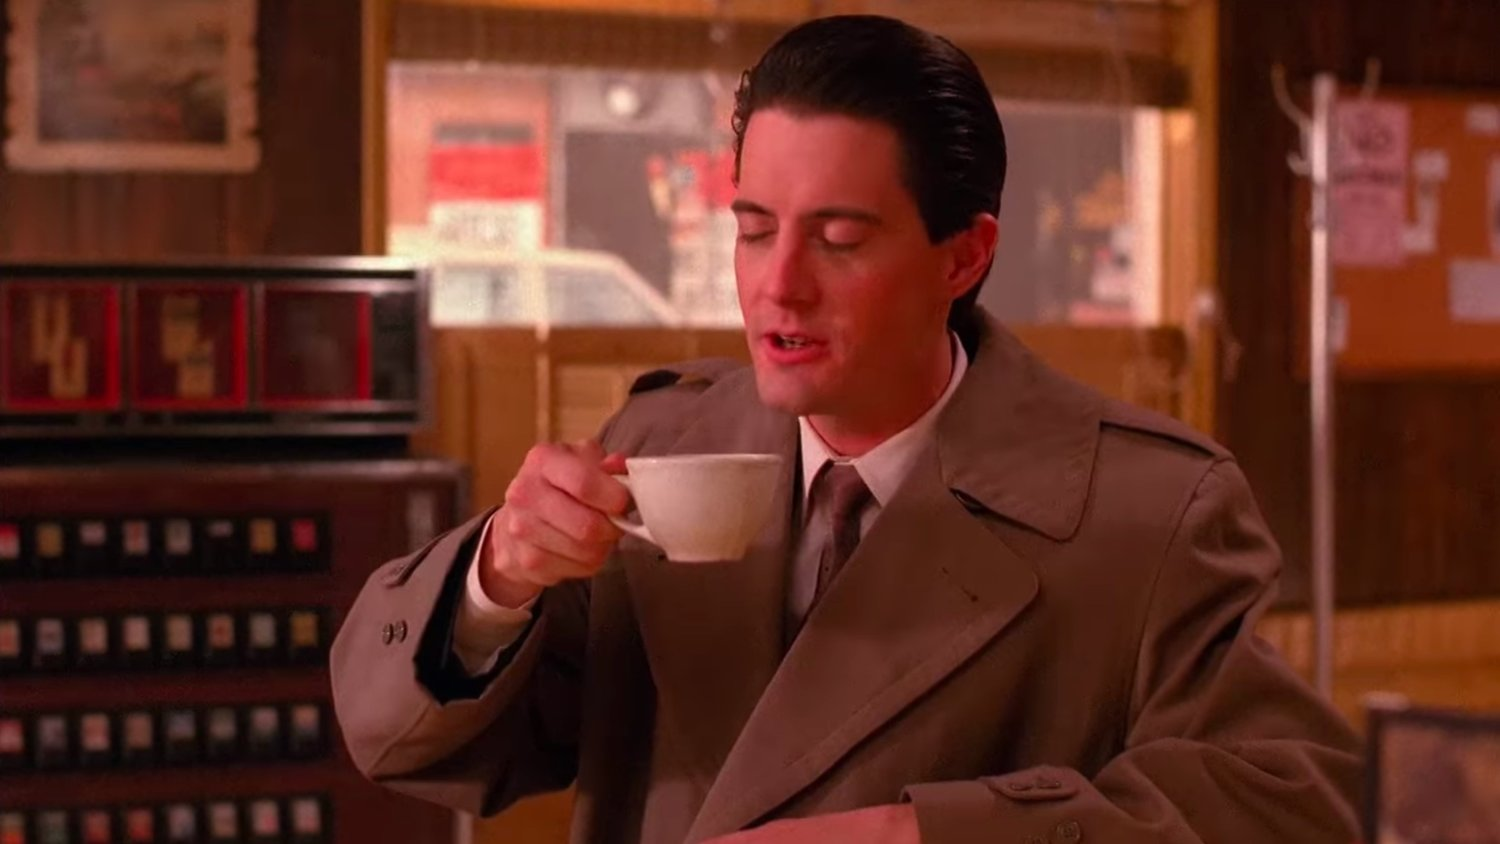 The New TWIN PEAKS Promo Spot Is a Damn Good Coffee Supercut